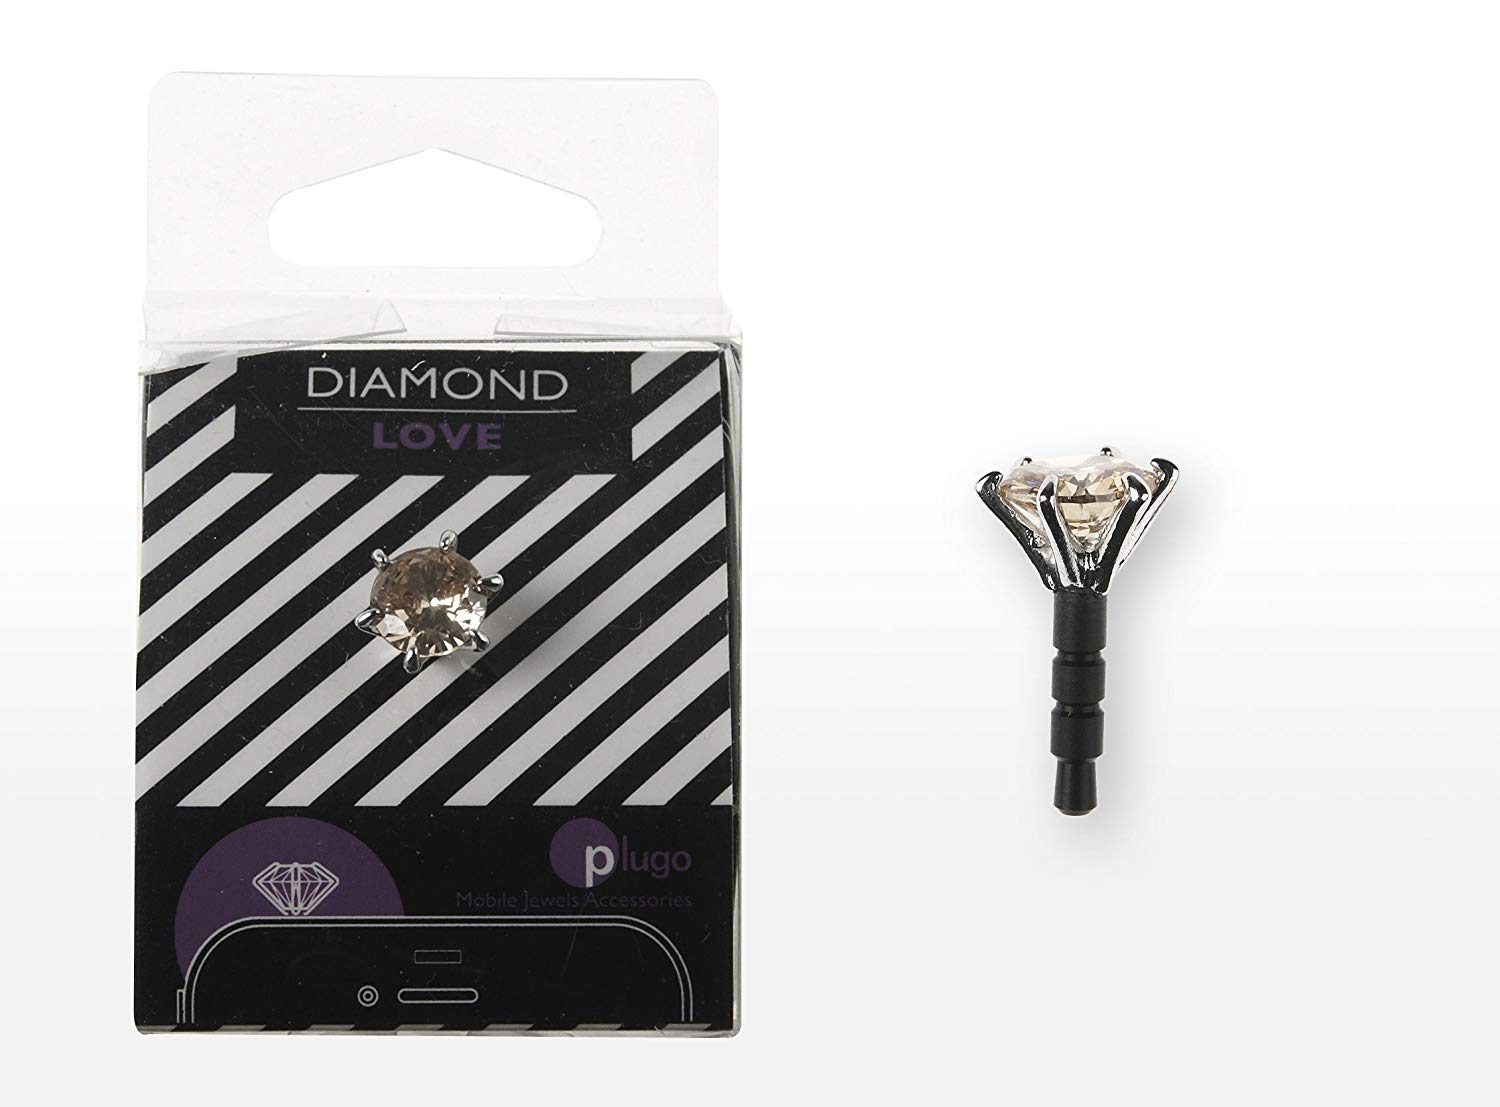 Accessory for portable devices Plugo Diamond Gold